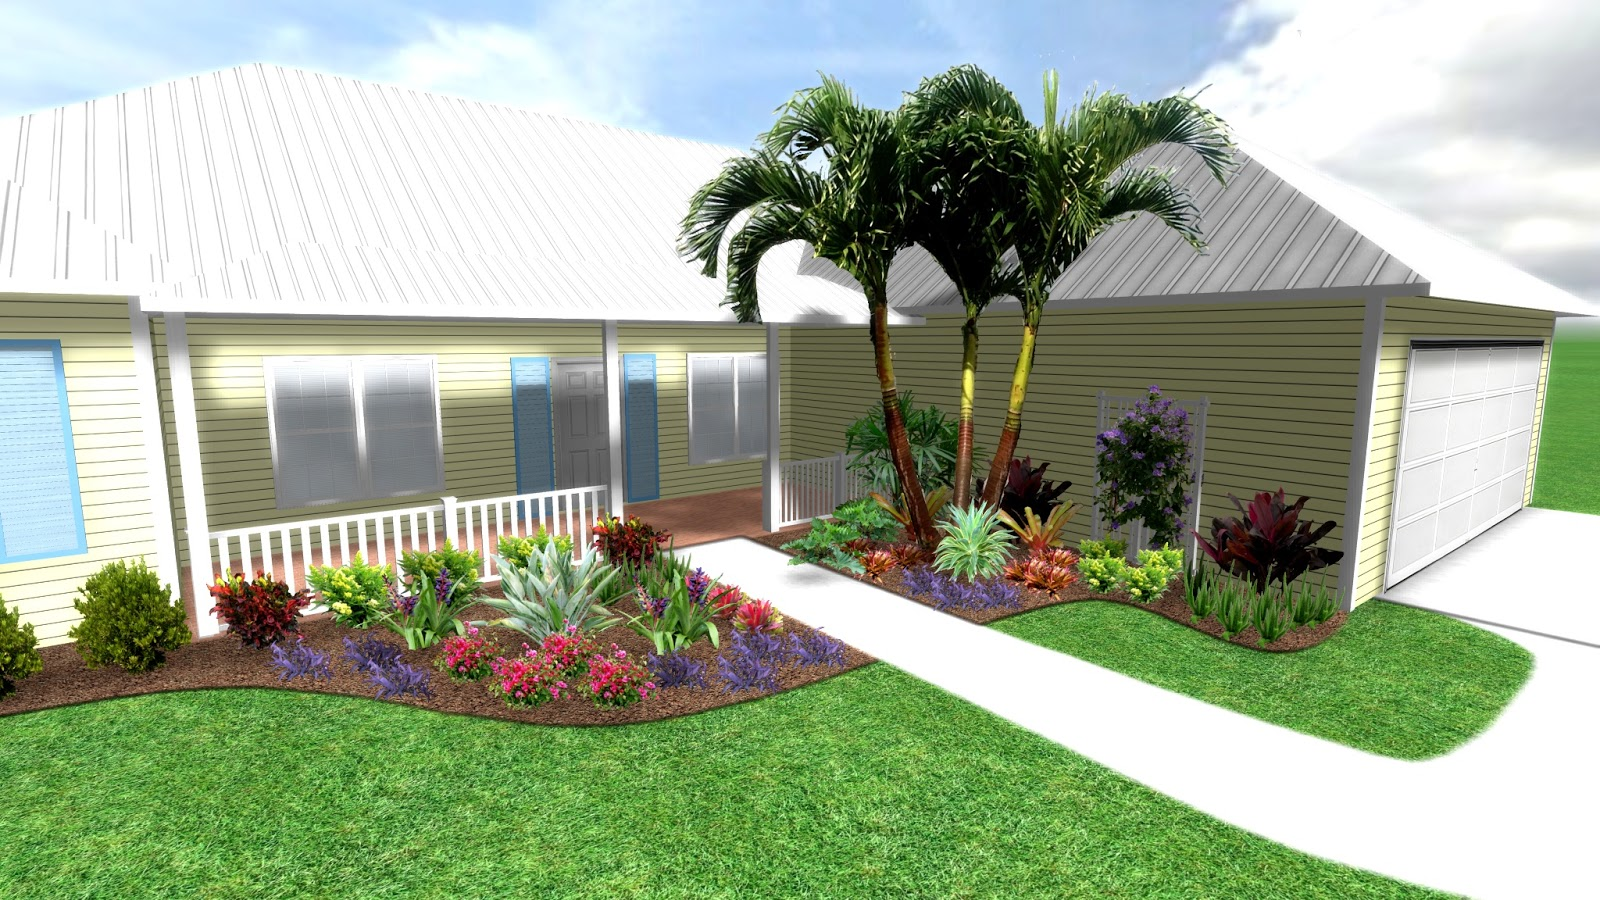 Tropical plant design for front yard landscape design in for South florida home designs